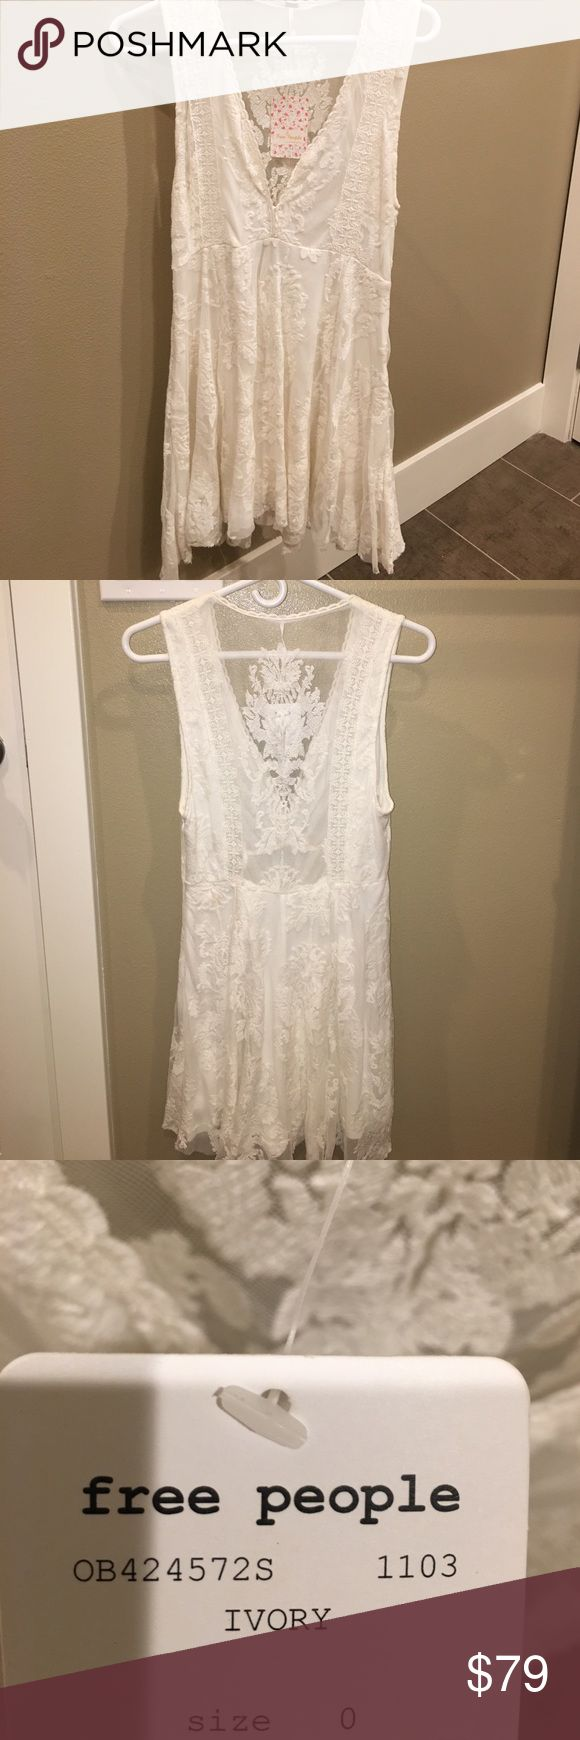 Free People White Dress Never worn and new with tags Free People dress! Absolutely love. One of my favorite pieces but I own in another color. Free People Dresses Mini